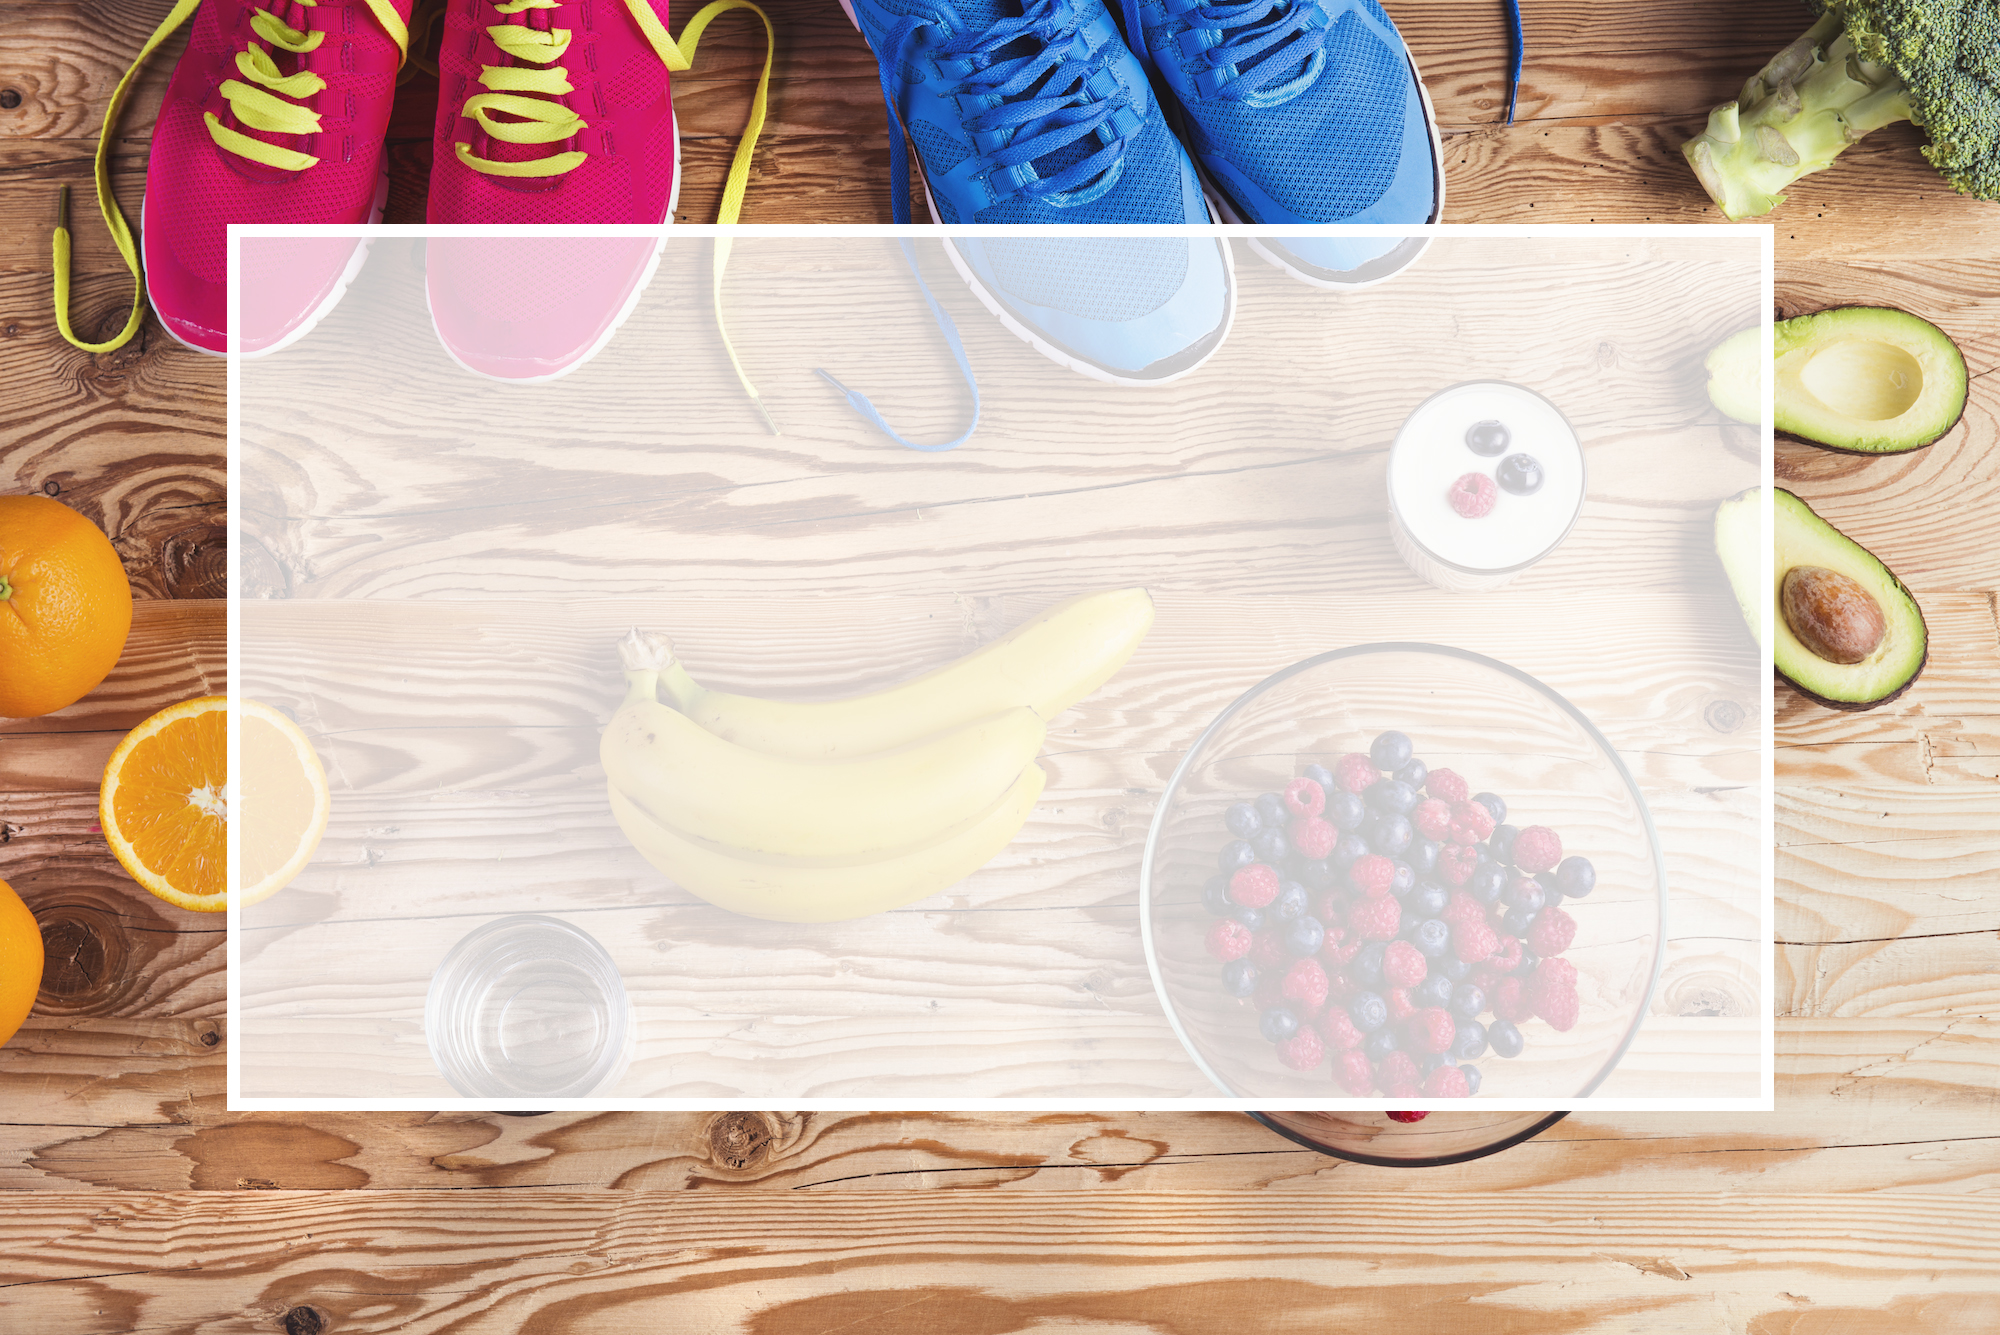 30 Day Fit and Healthy Jumpstart - If you've been struggling to melt those stubborn extra pounds and get back in shape, and you're tired of trying crazy diets that don't work long term, you'll want to keep reading.